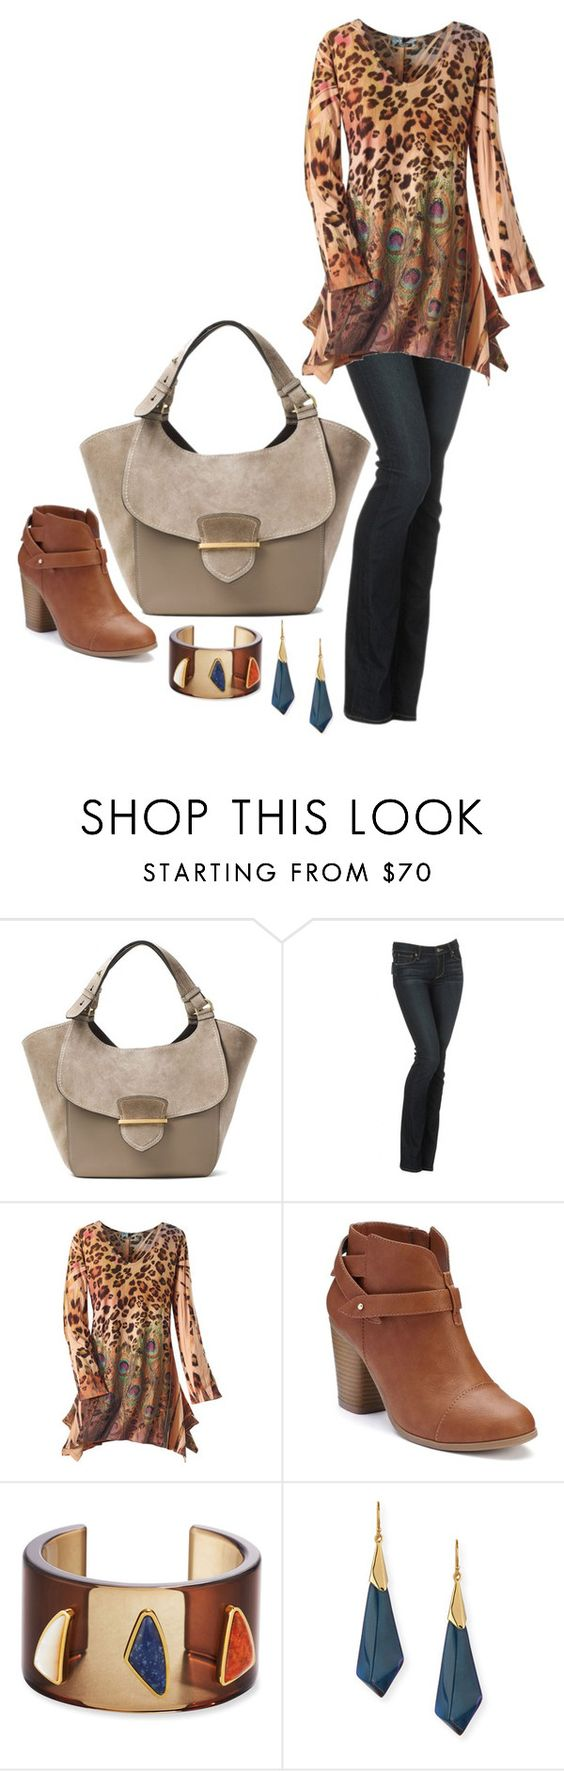 """Suede Bag... MK"" by maryv-1 ❤ liked on Polyvore featuring Michael Kors, Paige Denim, LC Lauren Conrad, Lizzie Fortunato, Alexis Bittar and holdontothatbag"